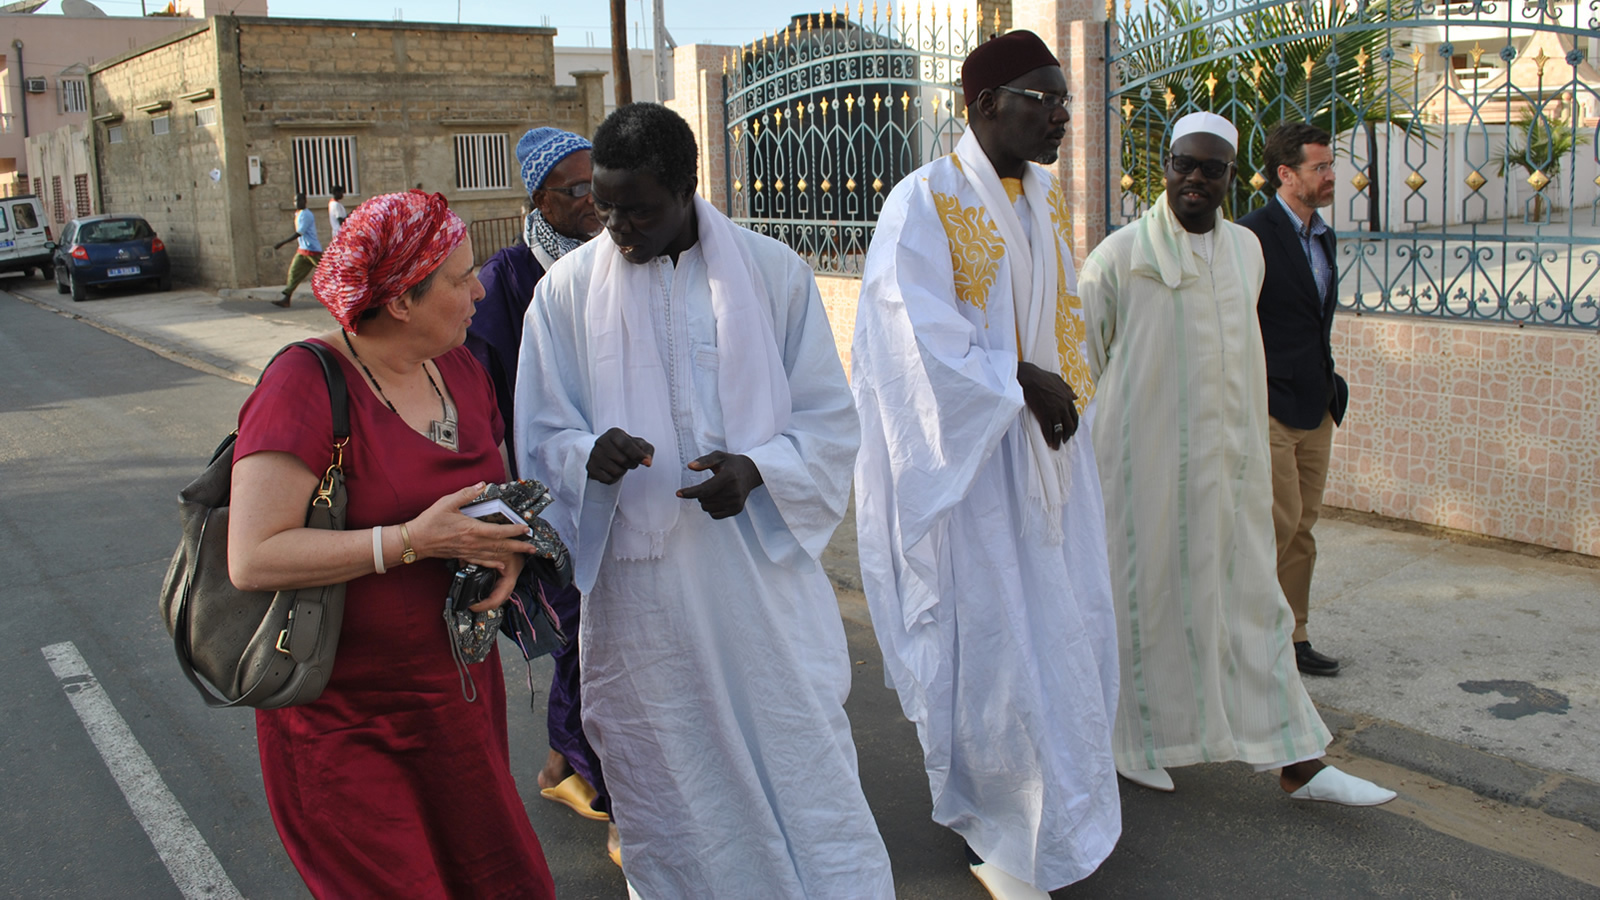 Katherine Marshall Talking to Senegalese Muslim Leaders in the Street